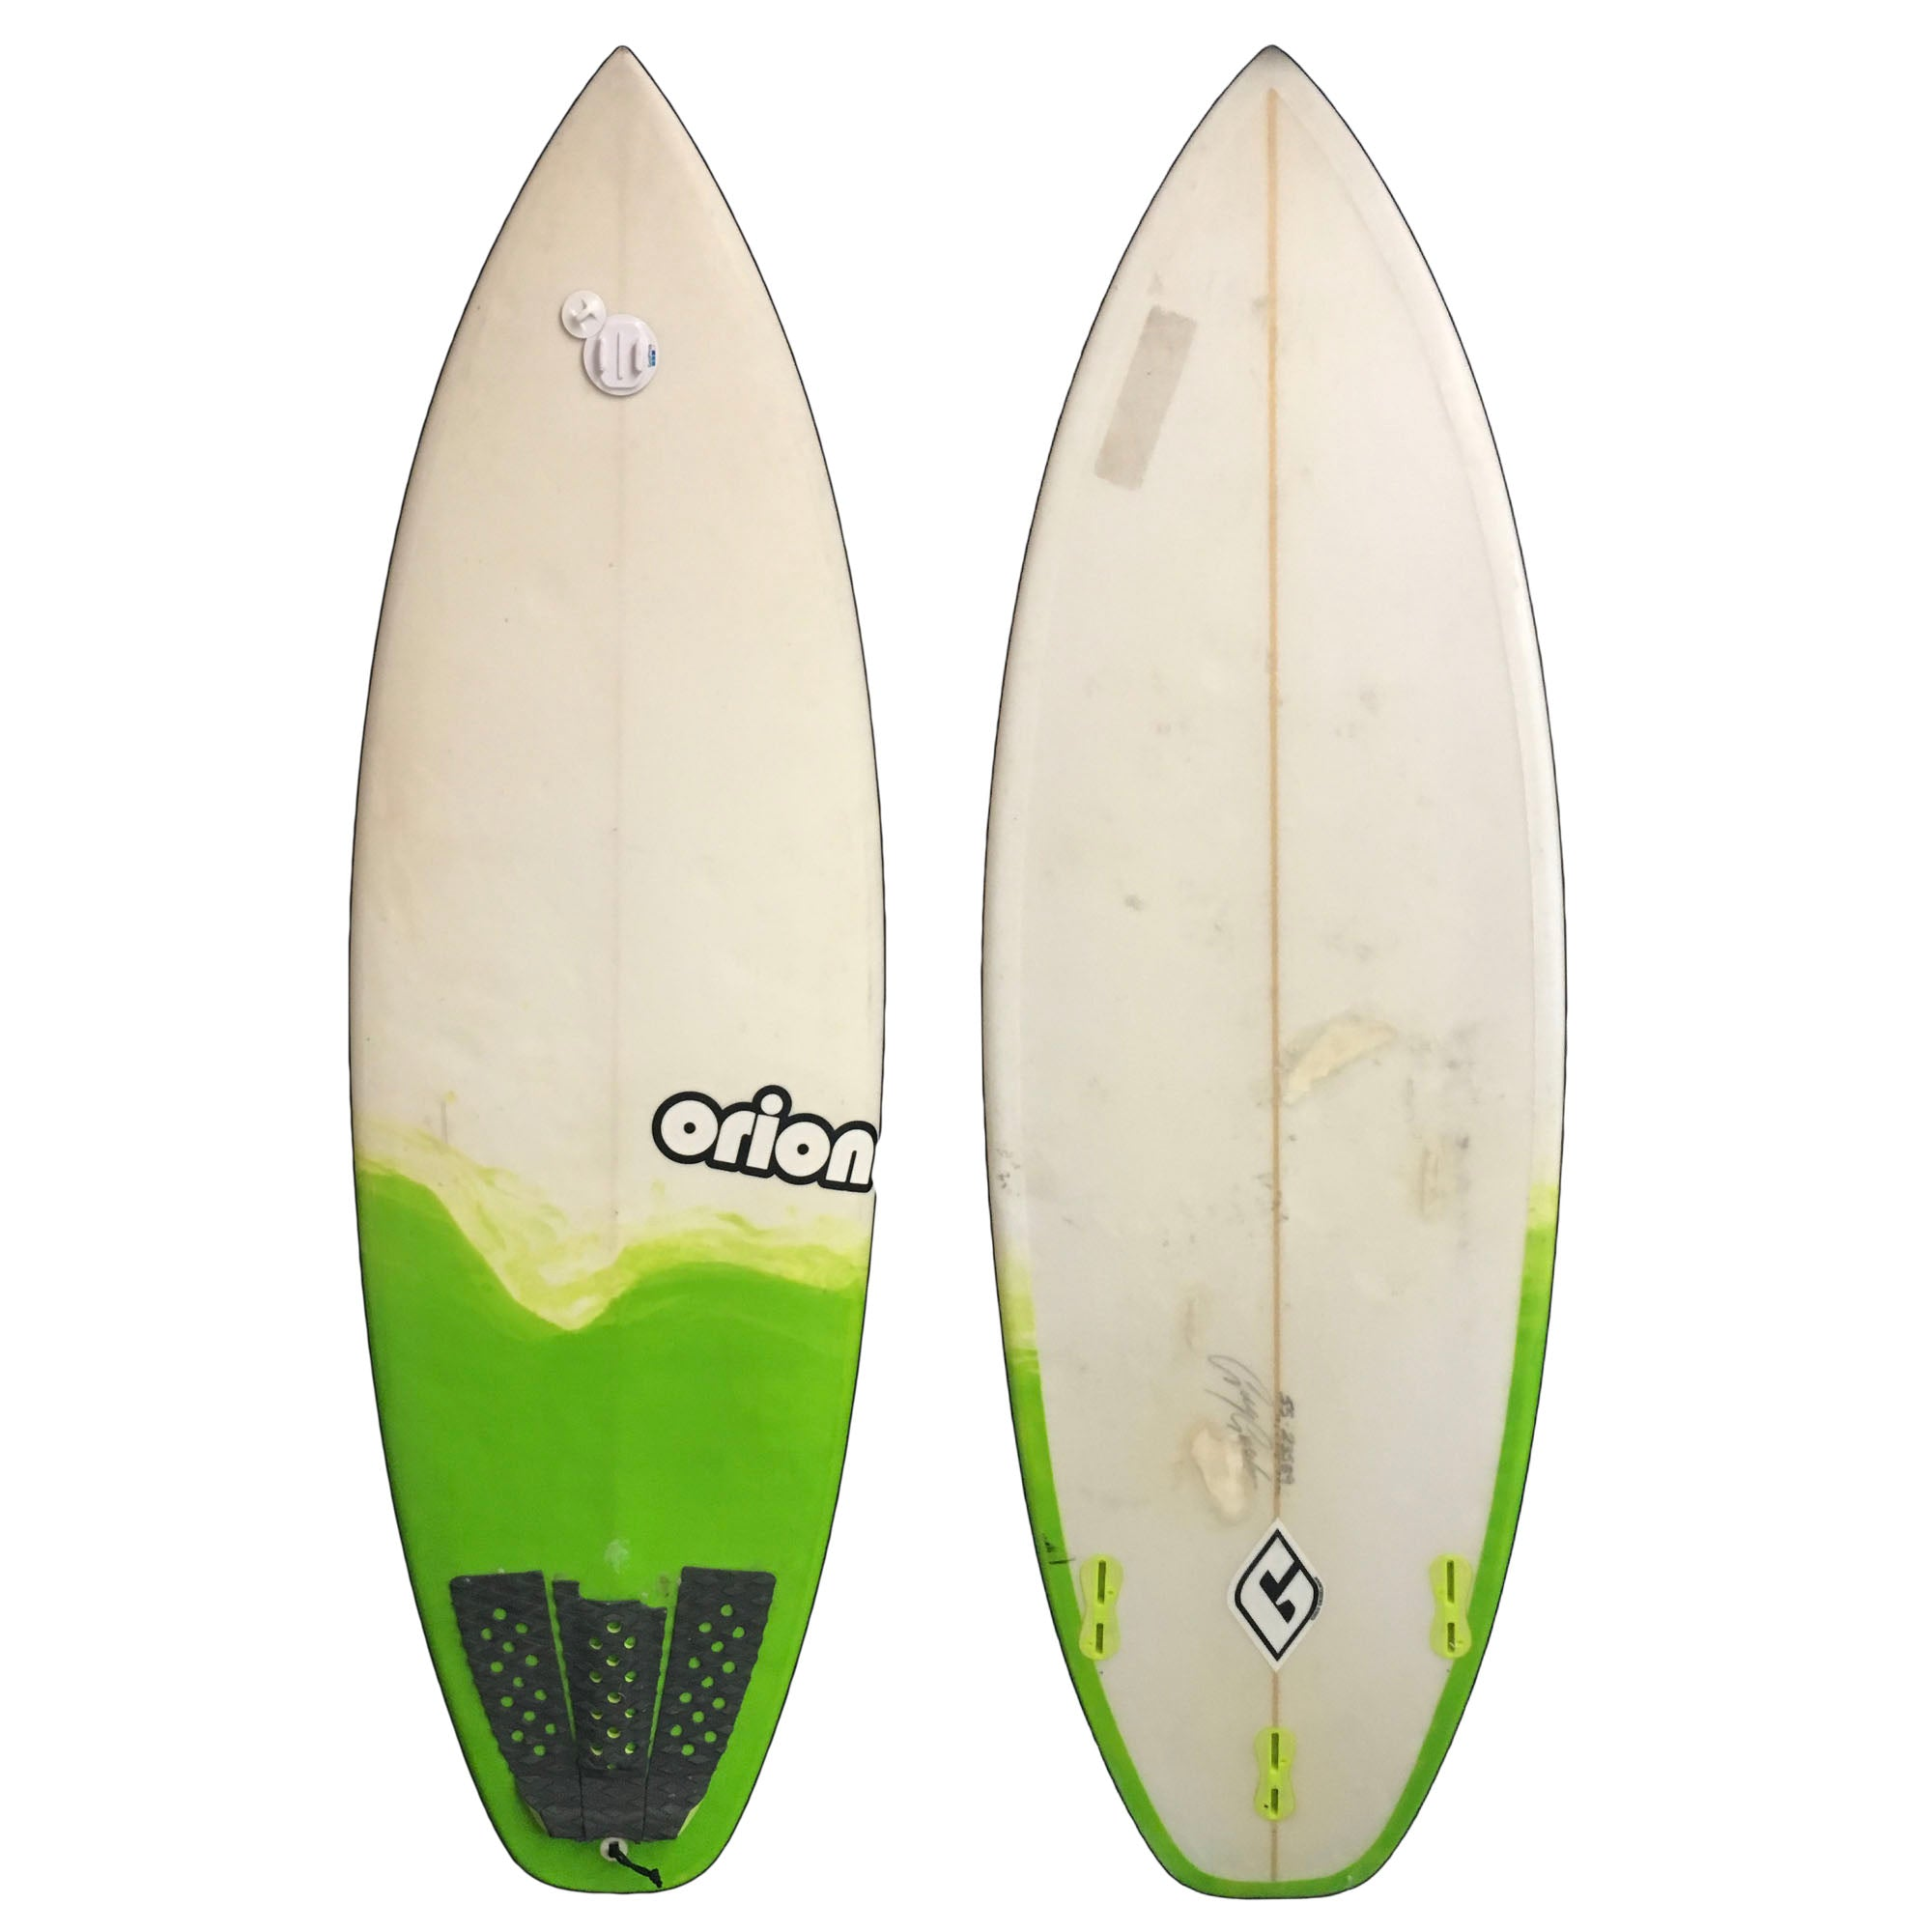 Orion 5'5 Used Surfboard